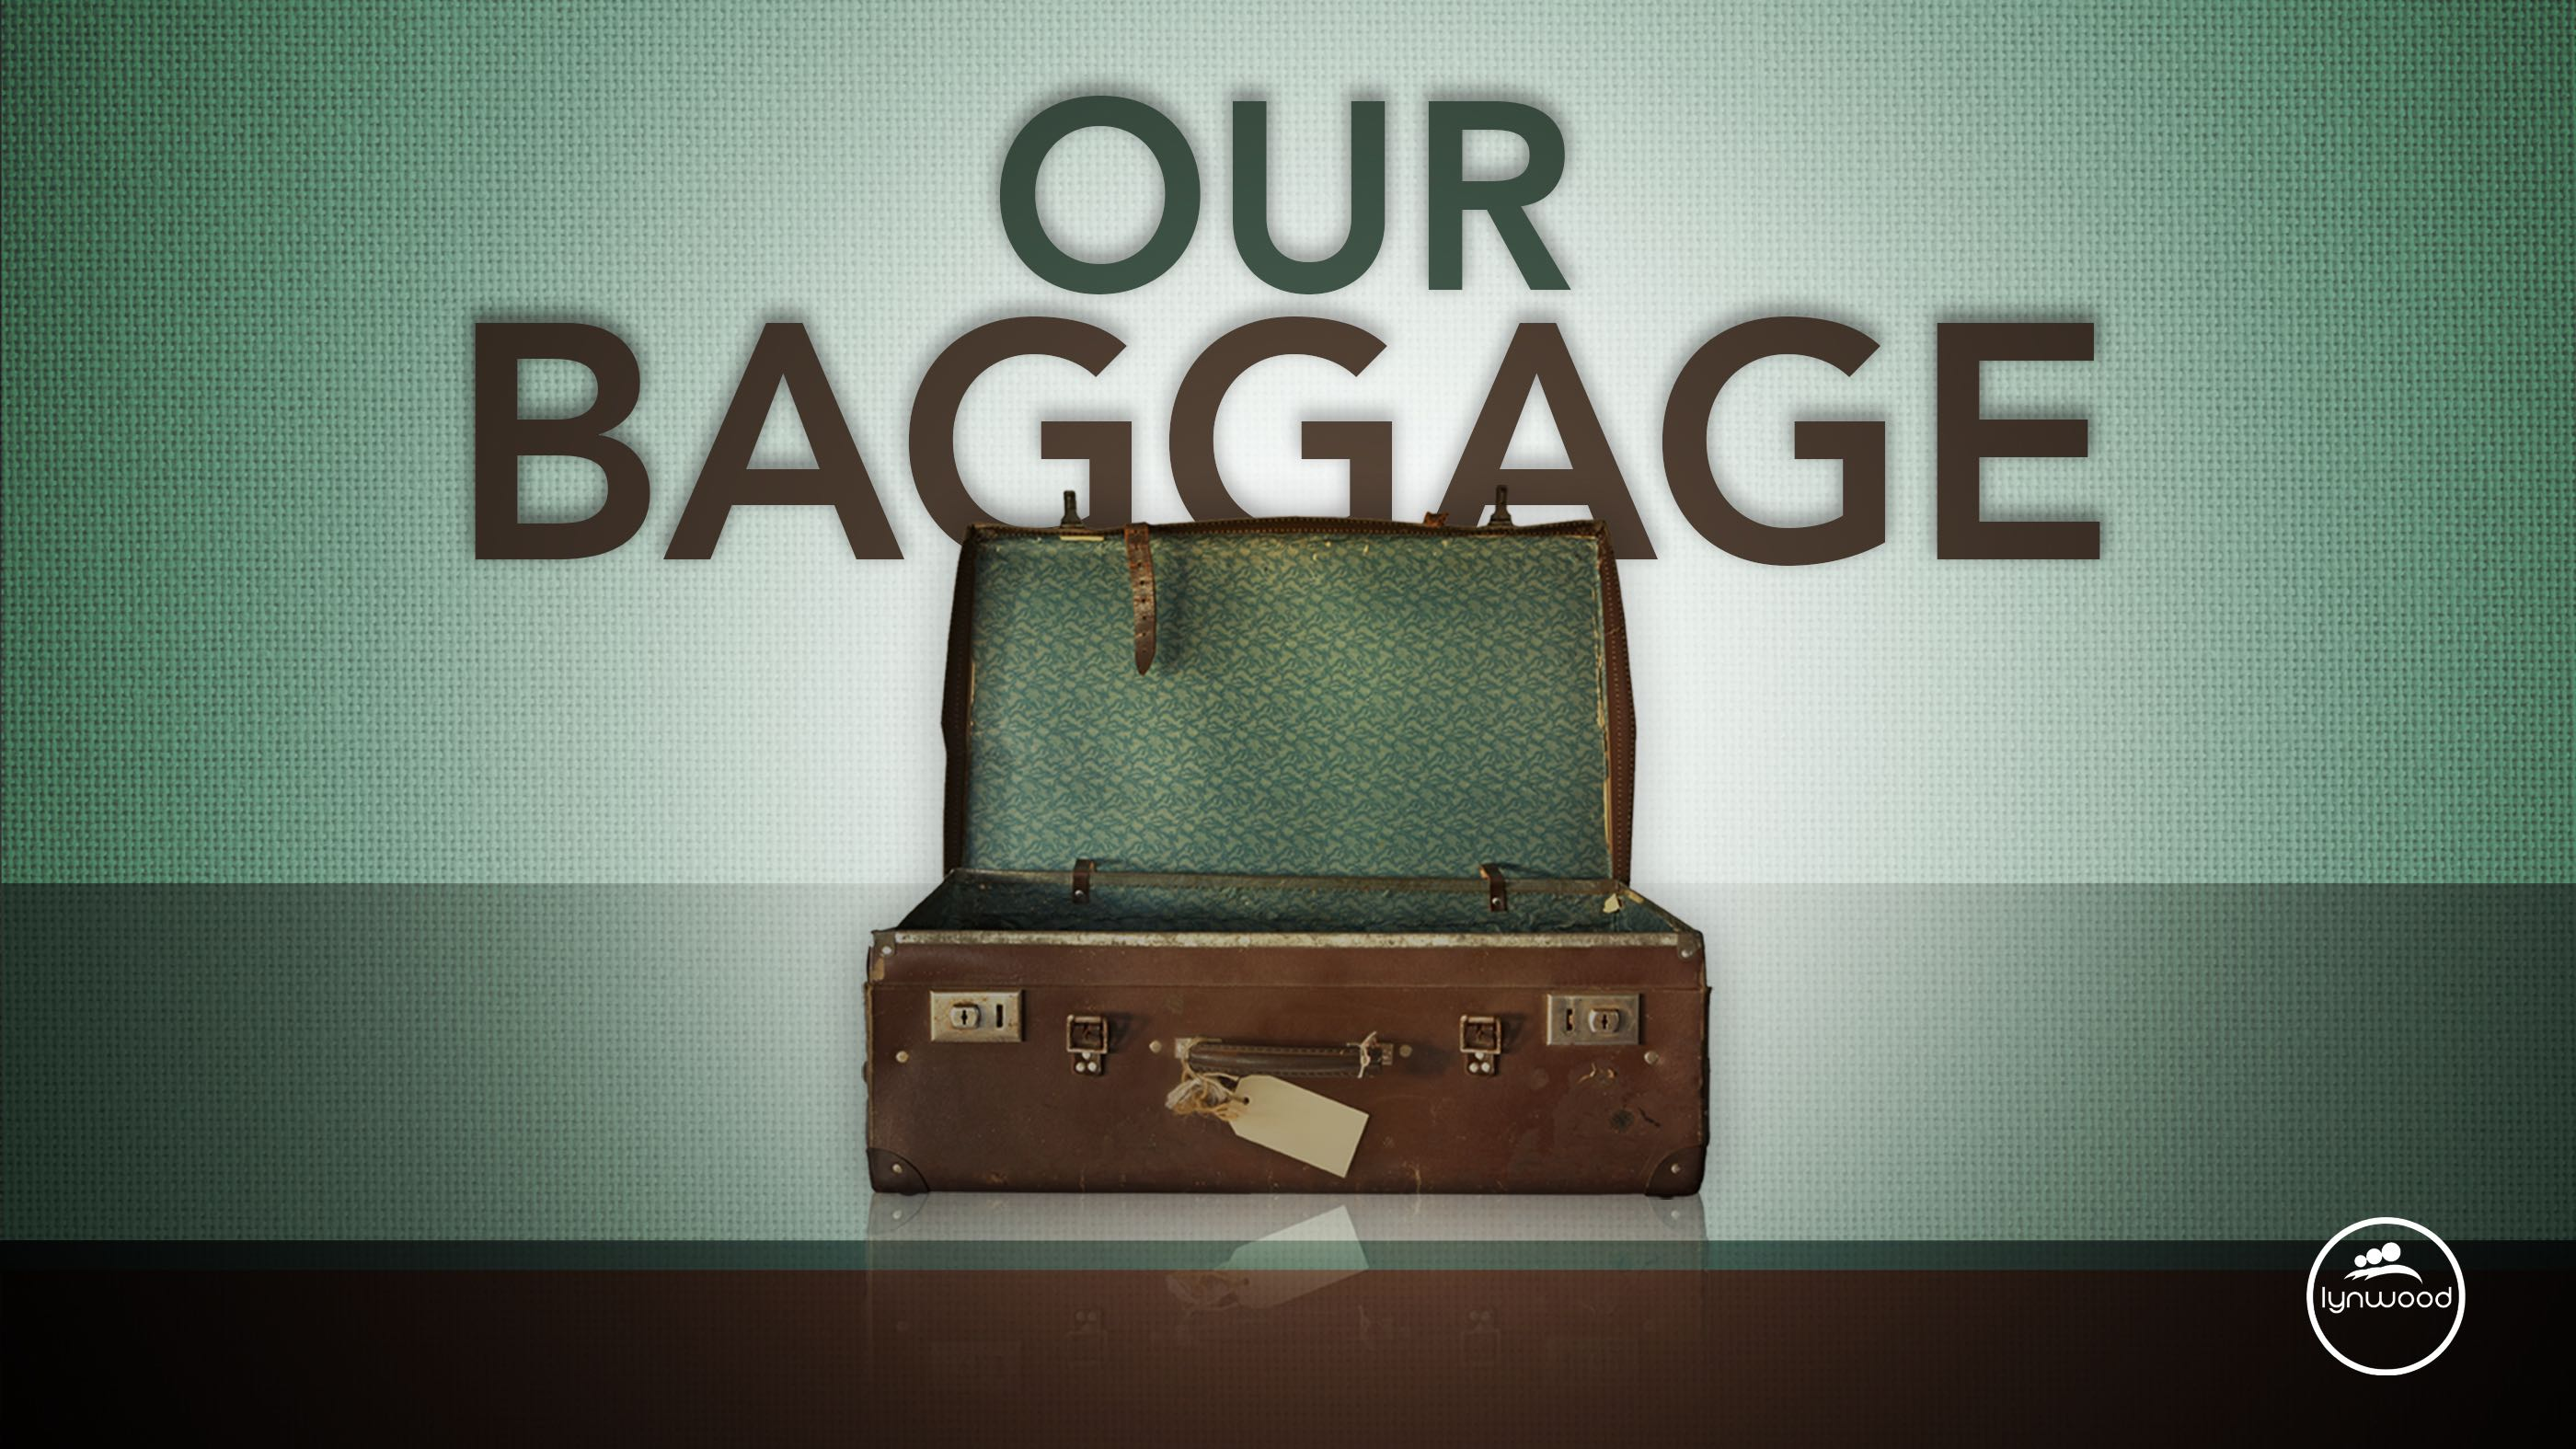 04-07-19 | Our Baggage | Finances | Mark Anderson